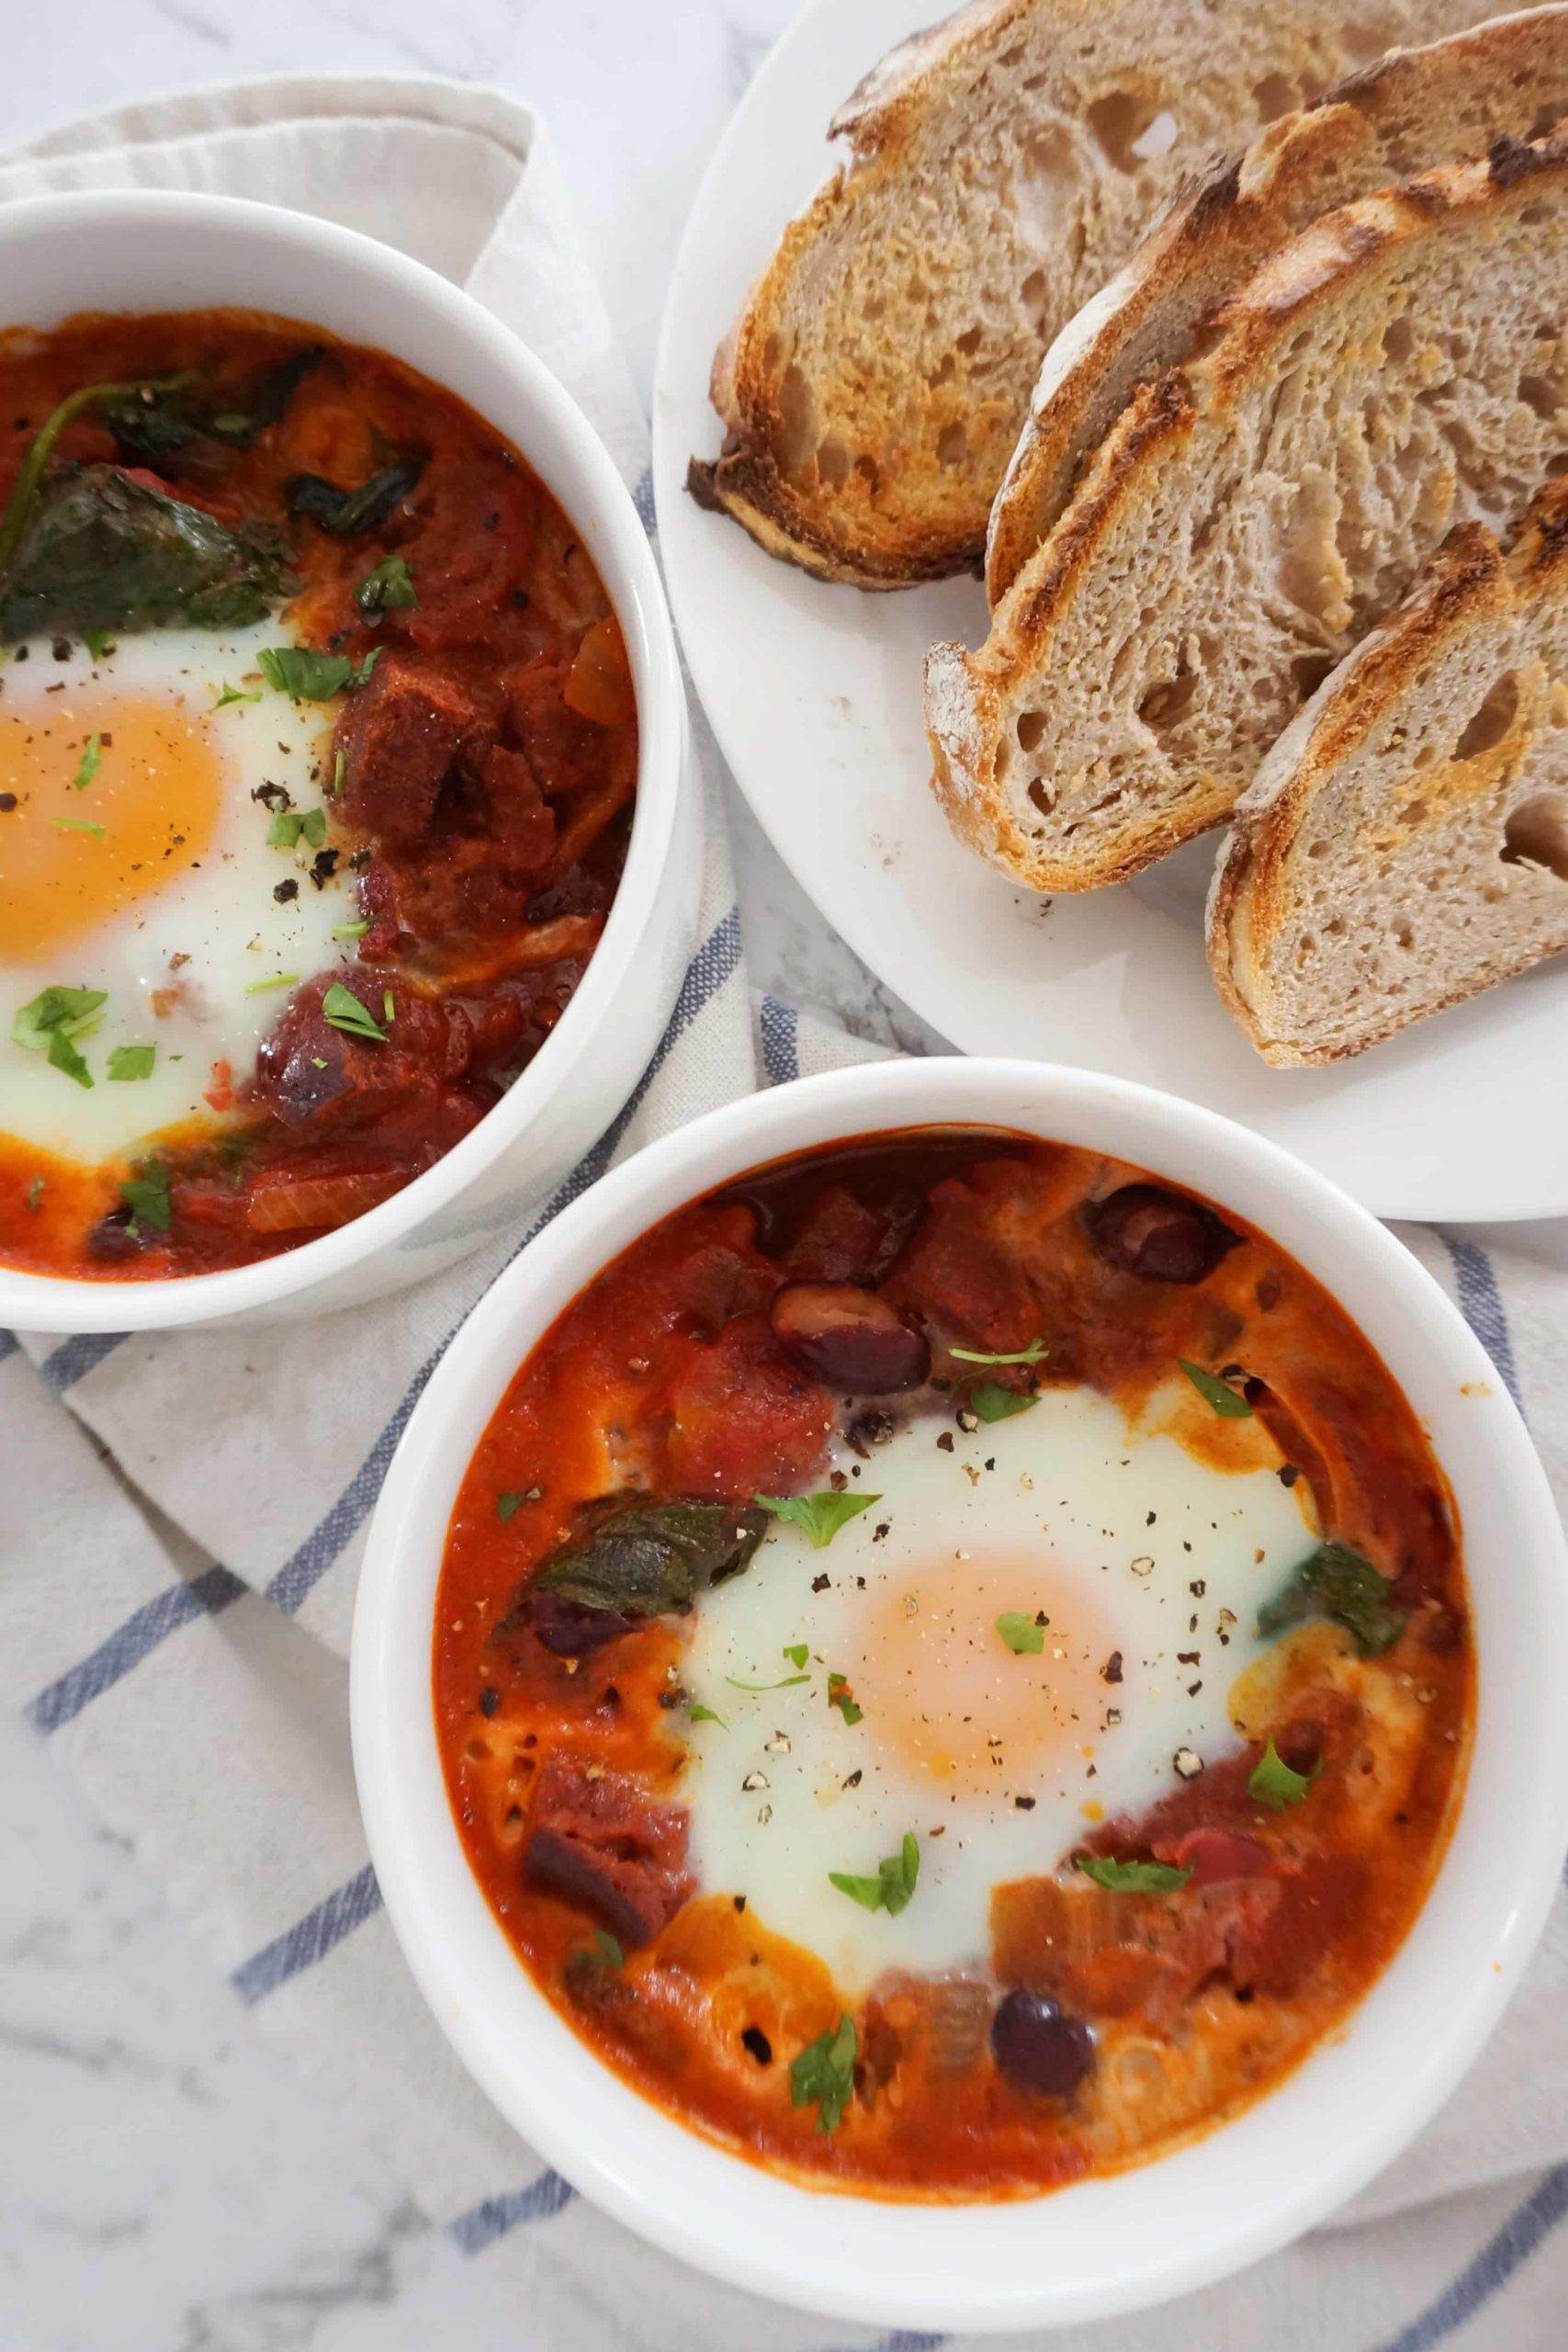 baked eggs in ramekins next to a plate of toasted bread